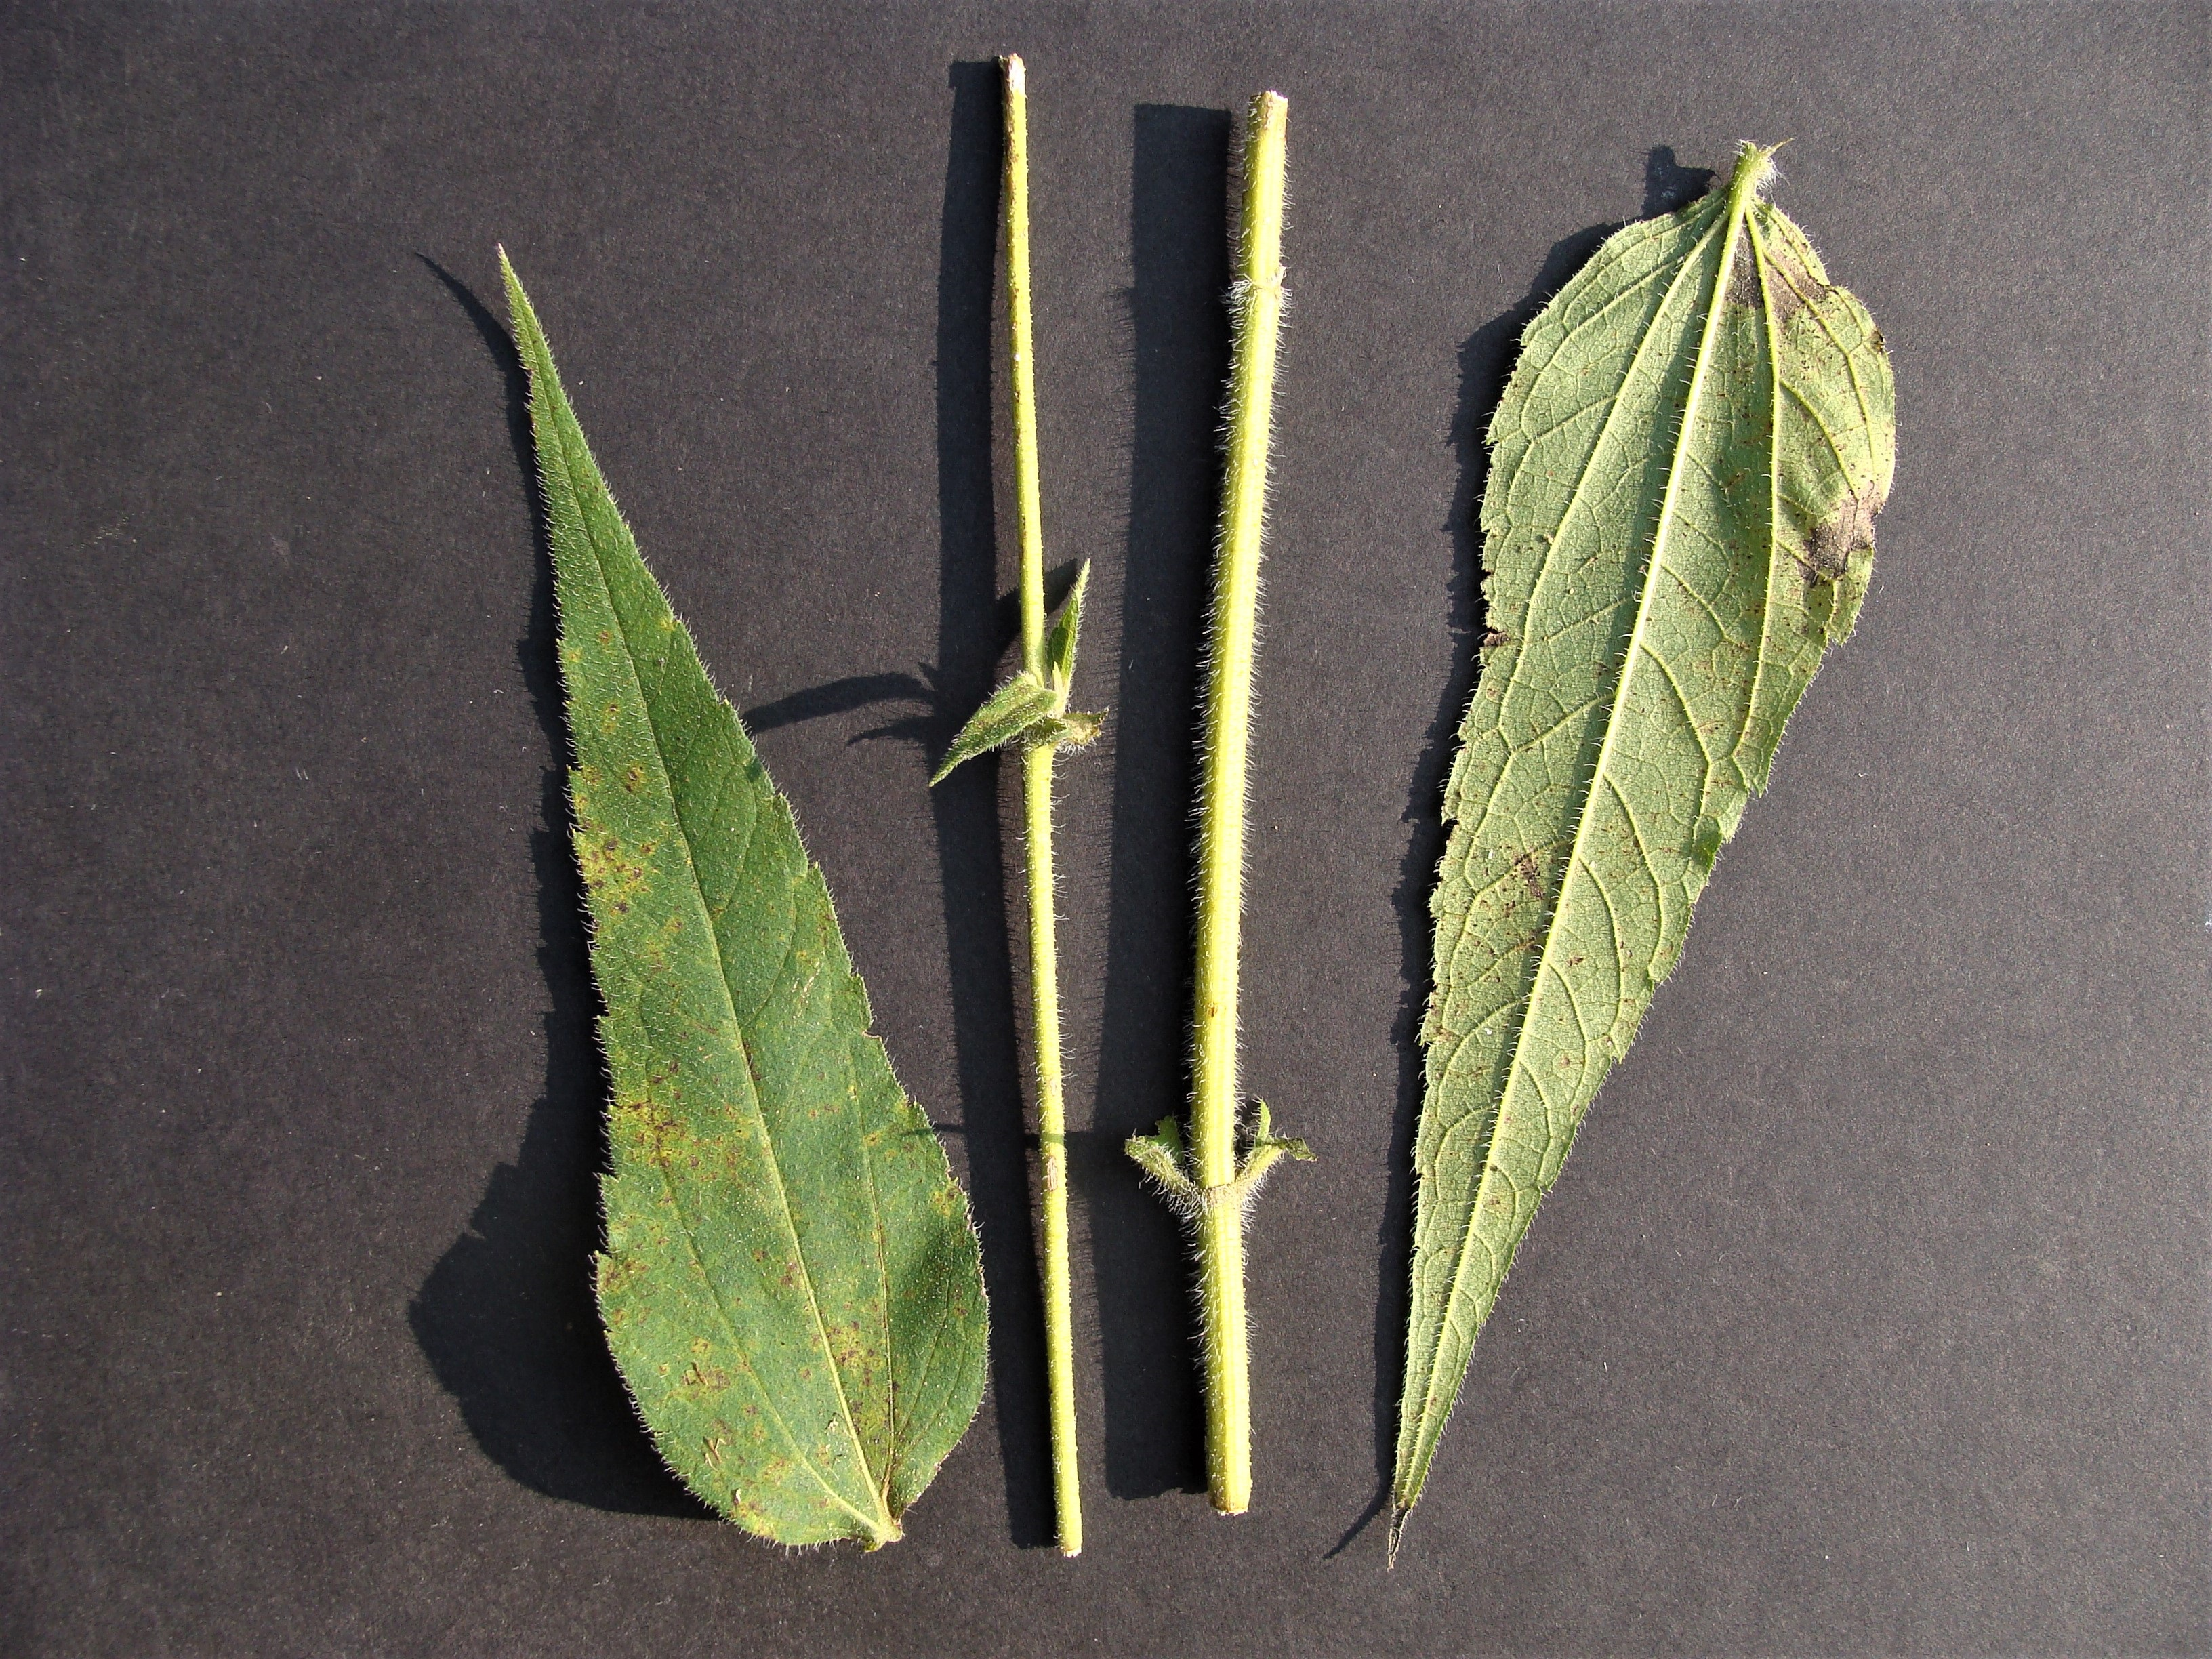 Photo 3: Display showing upper and lower leaf surfaces along with a lower and upper portion of a stem. Primary lateral veins originate off midrib at leaf blade and petiole junction. Stems and both sides of leaves are hairy.